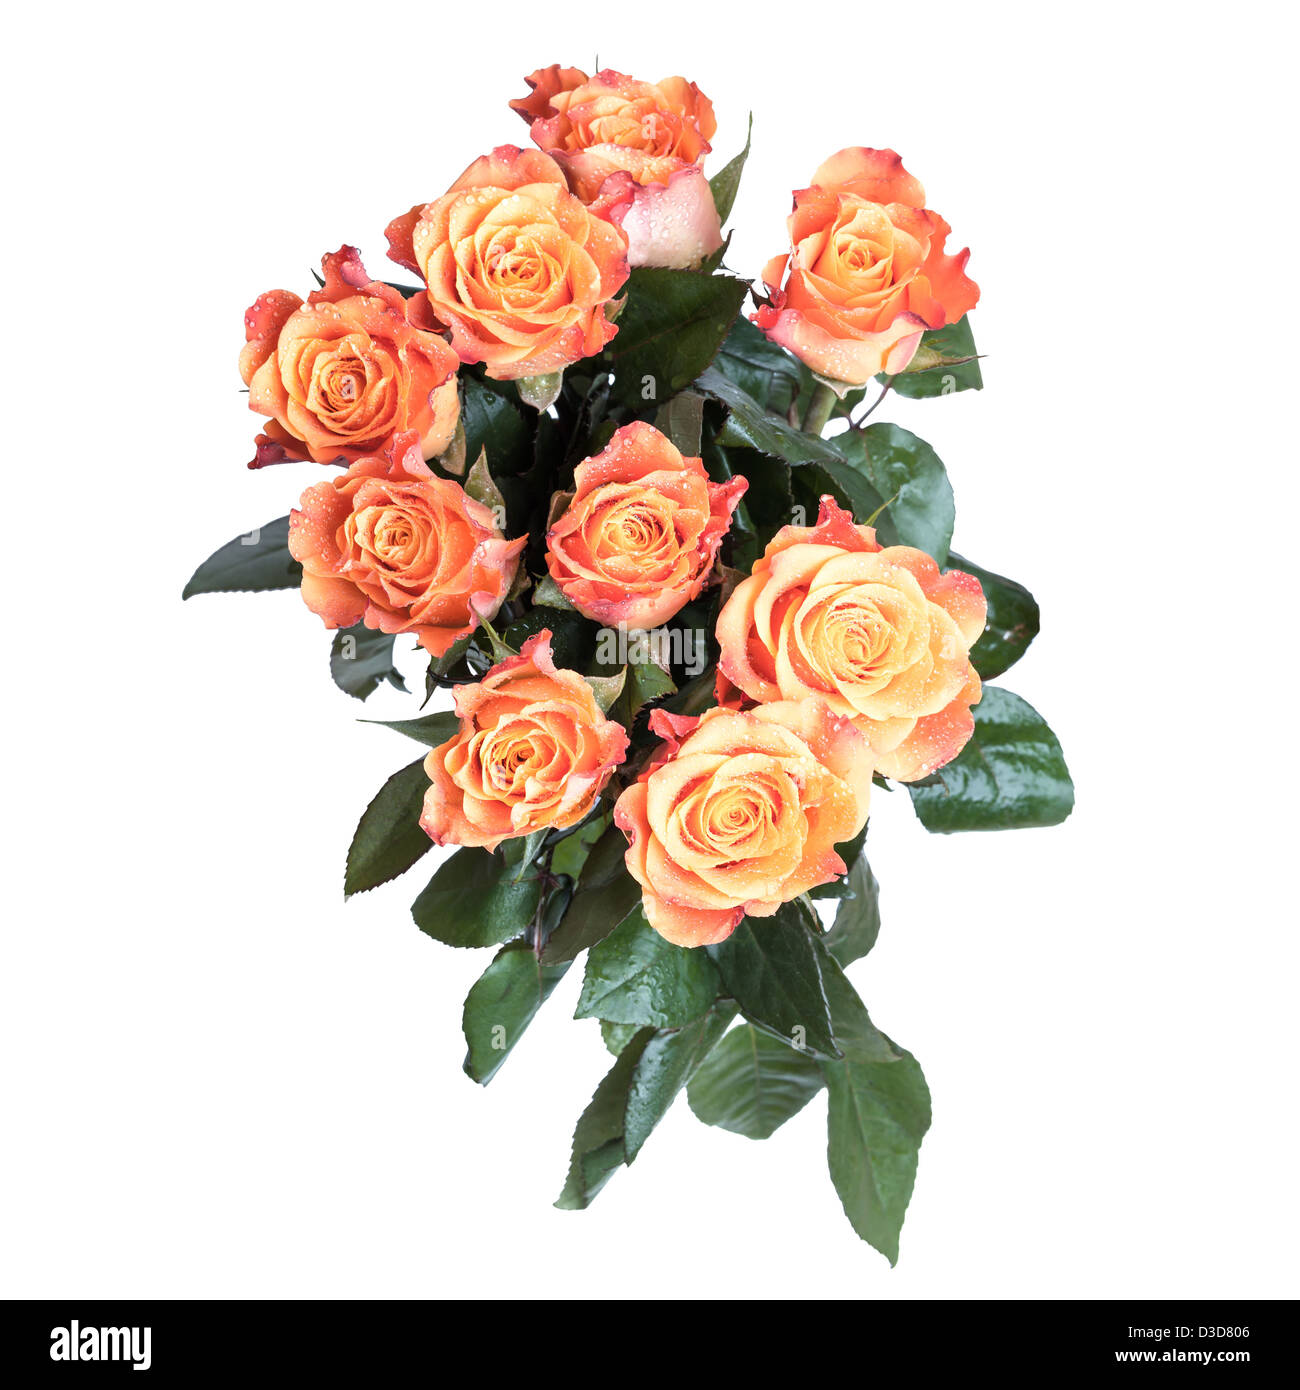 Bouquet of red and yellow roses flowers top view above isolated on bouquet of red and yellow roses flowers top view above isolated on white background izmirmasajfo Images